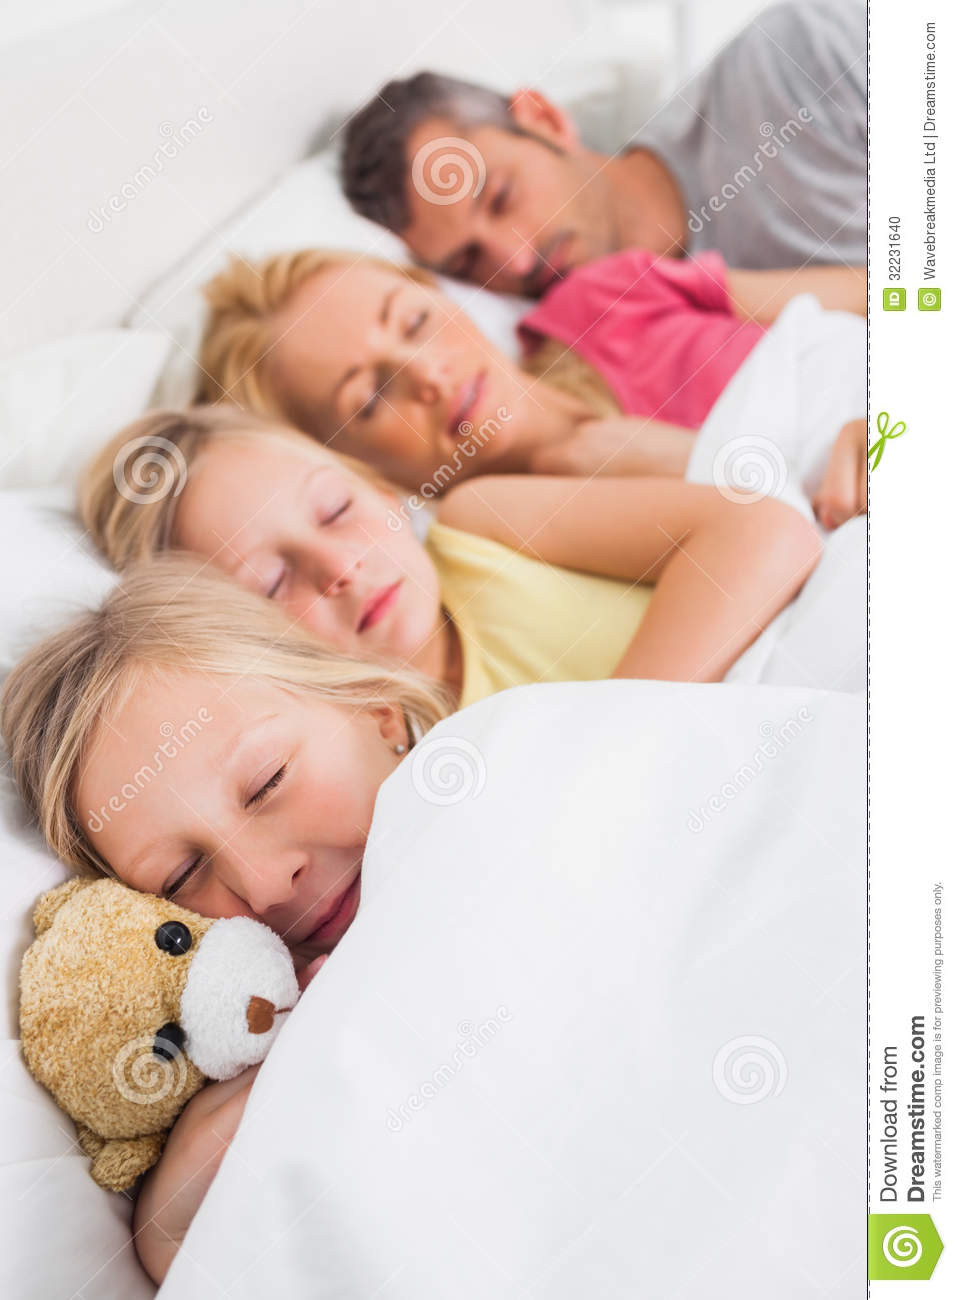 Young Girl Holding A Teddy Bear Next To Her Sleeping